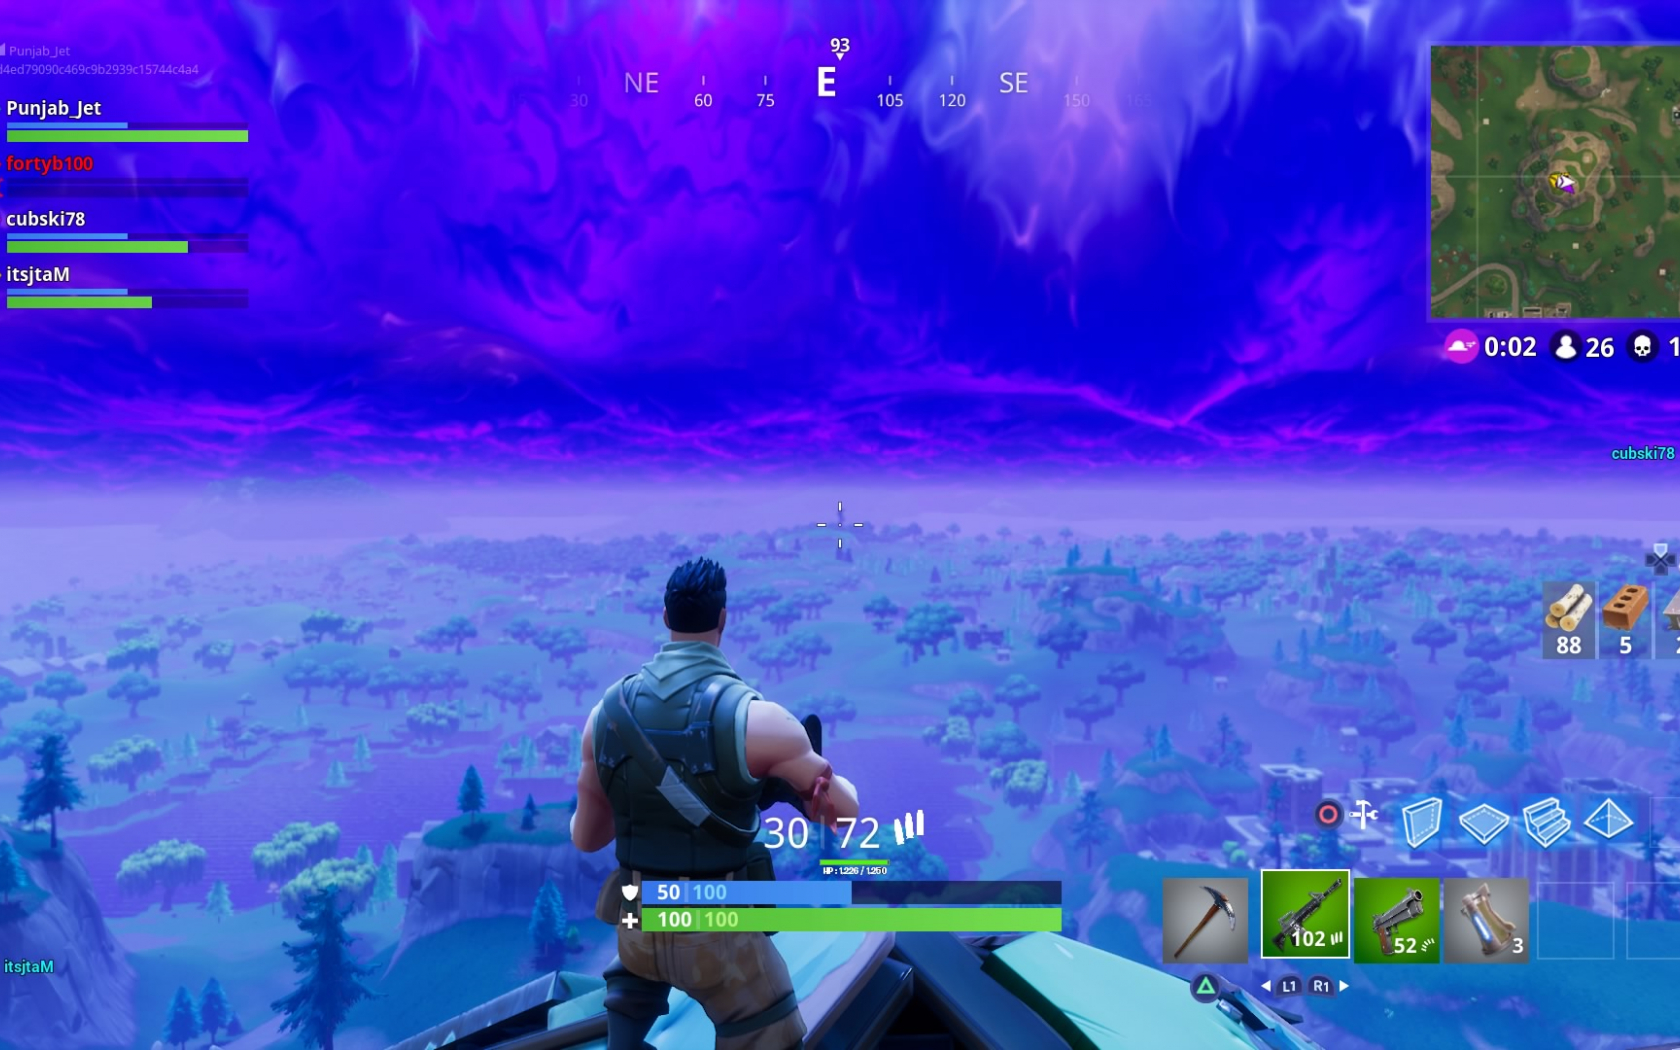 Free Download Fortnite Map View Computer Wallpaper 63031 1920x1080px 1920x1080 For Your Desktop Mobile Tablet Explore 31 Fortnite Map Wallpapers Fortnite Map Wallpapers Map Wallpapers Map Wallpaper